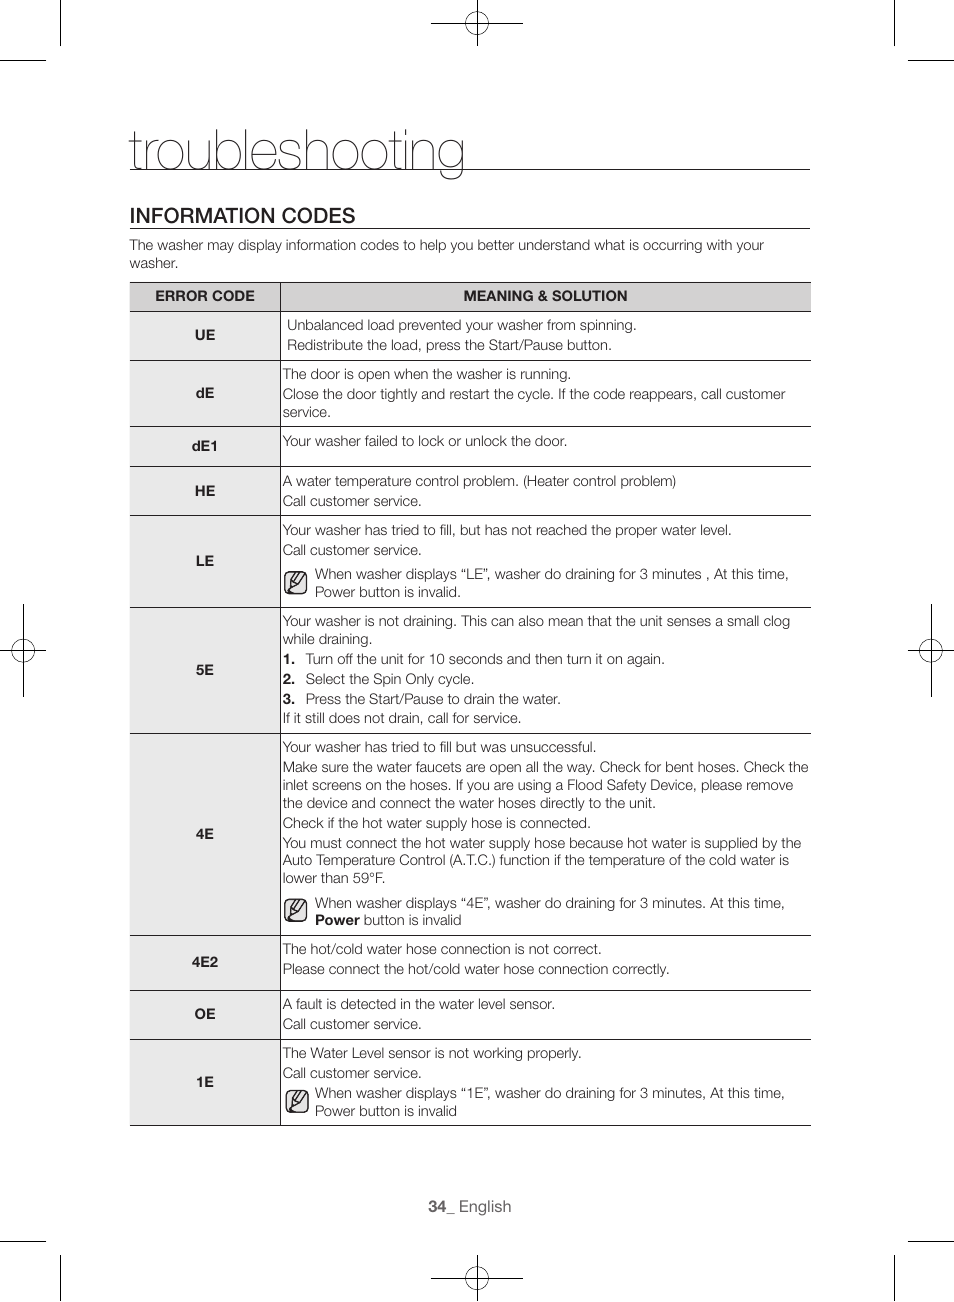 Troubleshooting, Information codes   Samsung WF45H6300AW-A2 User